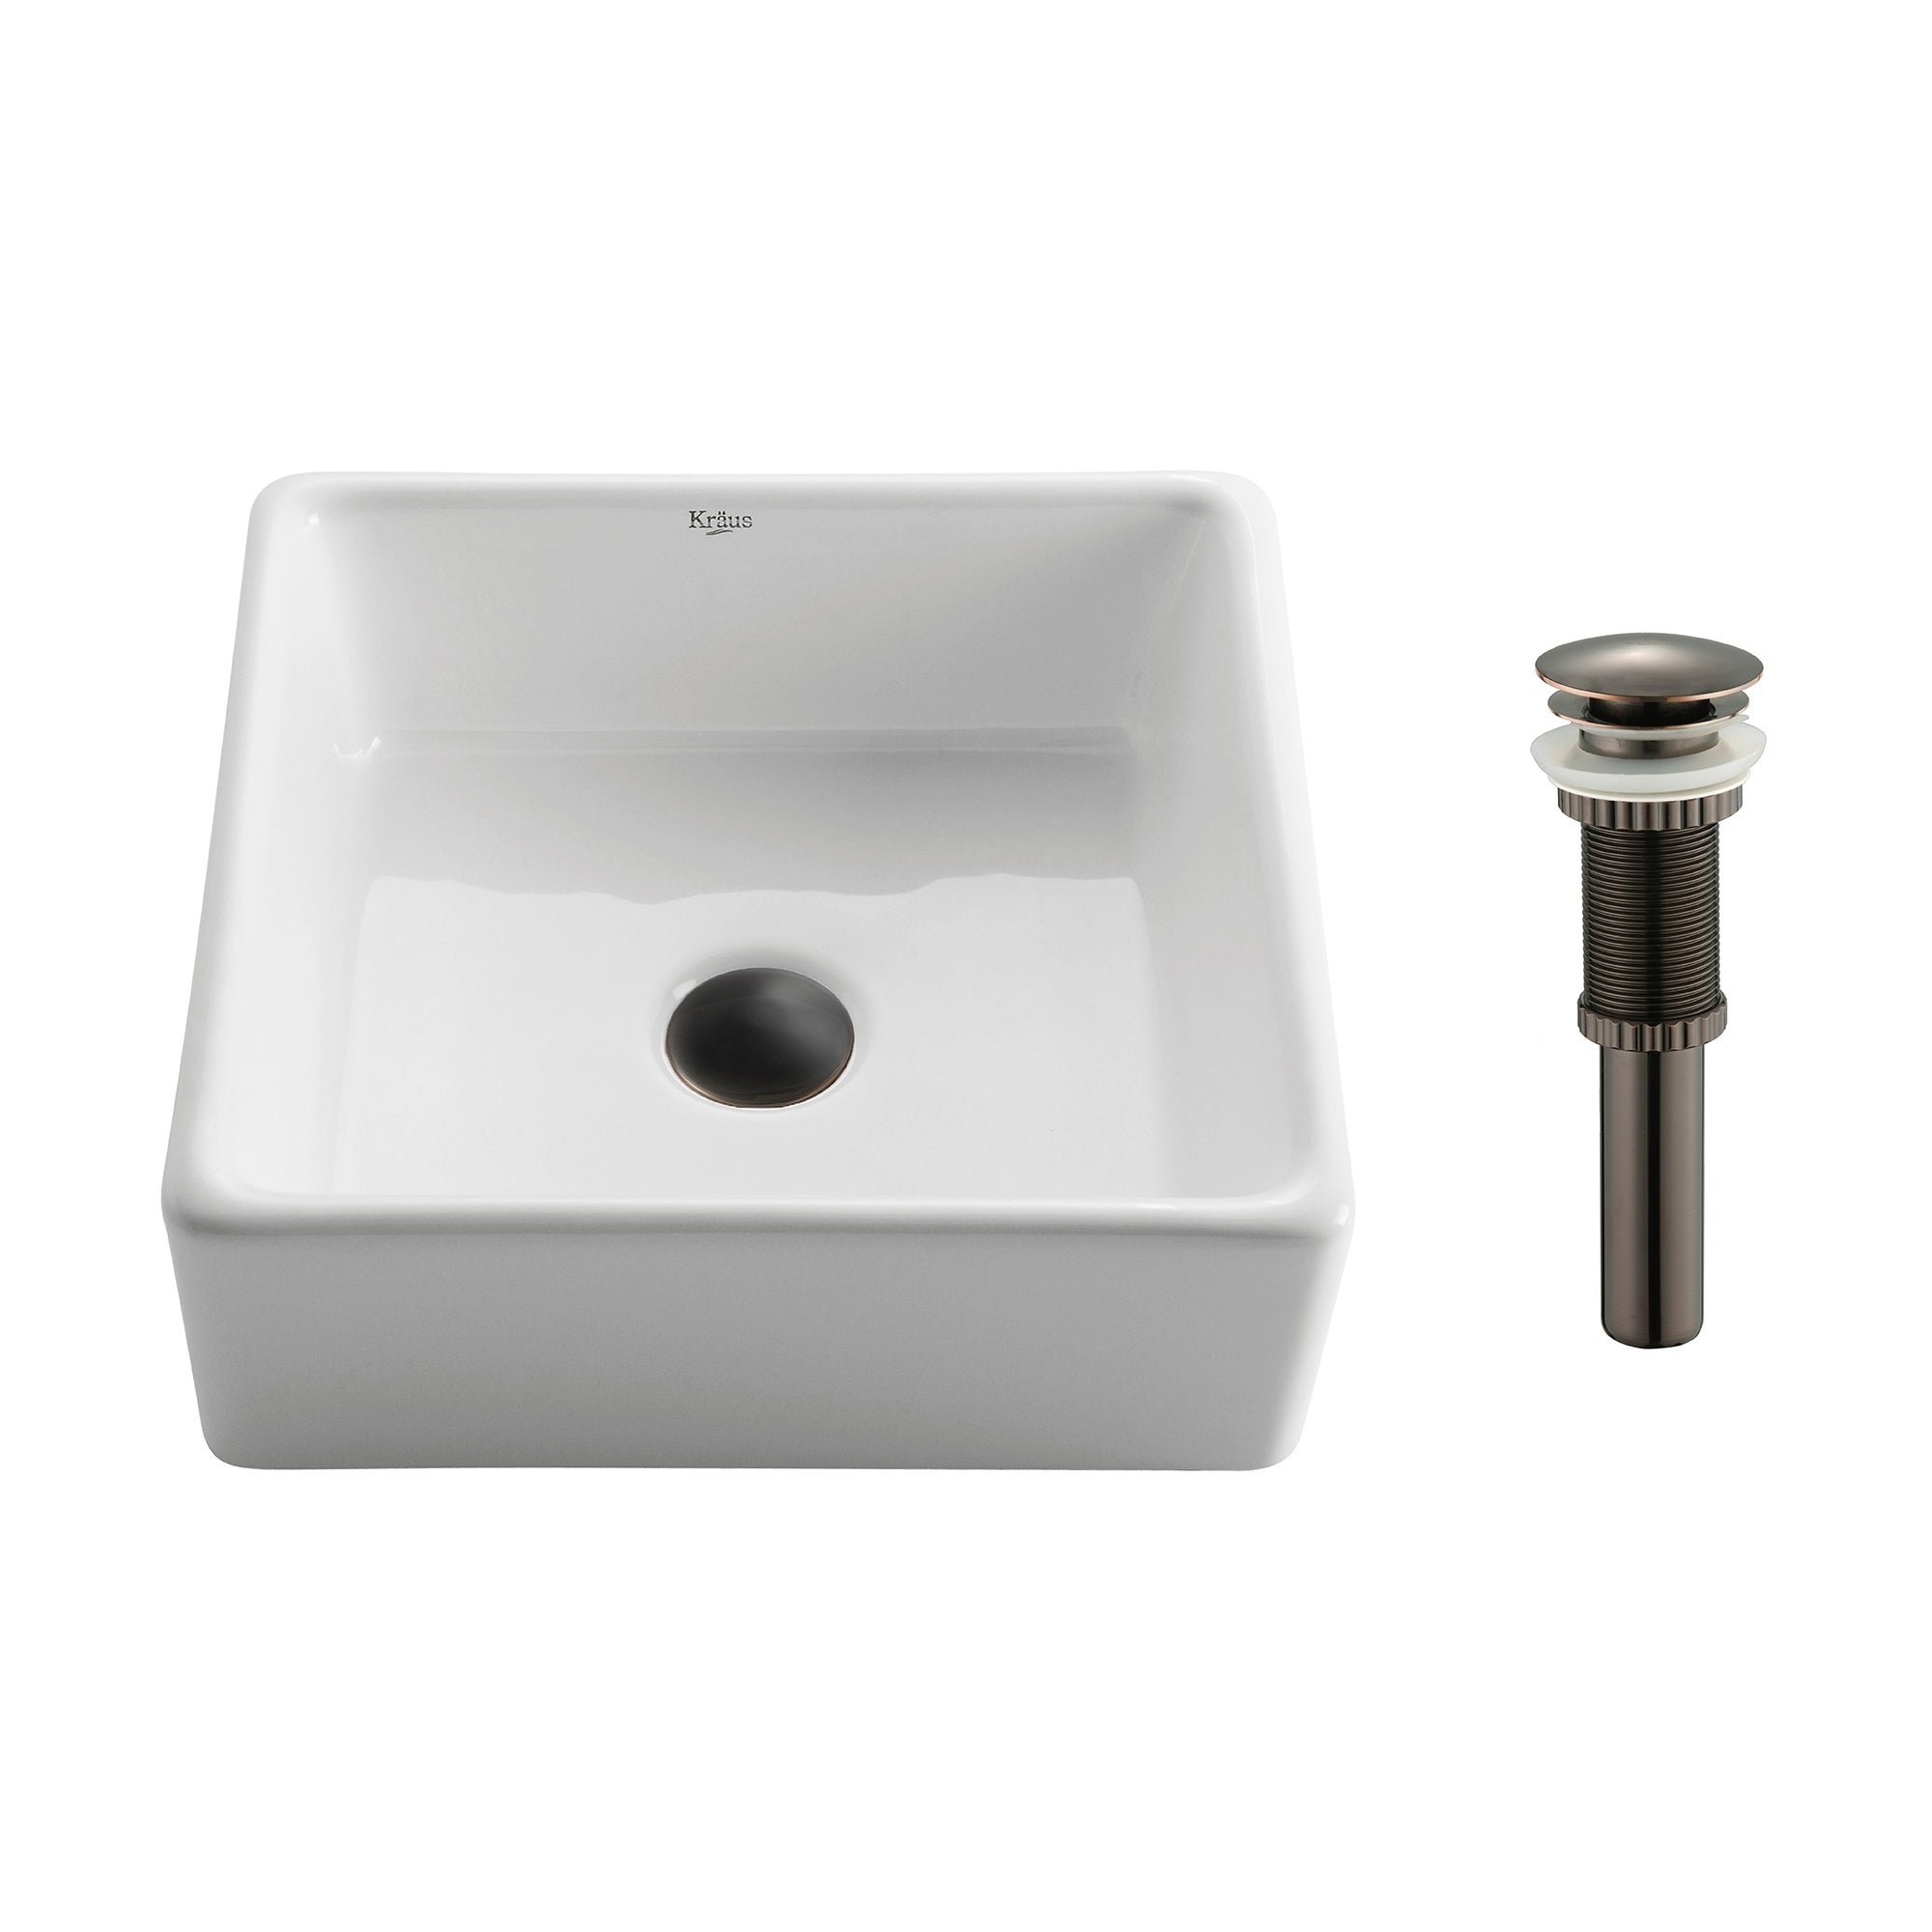 Kraus Kcv 120 Elavo 15 Inch Square Vessel Porcelain Ceramic Vitreous Bathroom Sink In White Pop Up Drain Optional On Free Shipping Today